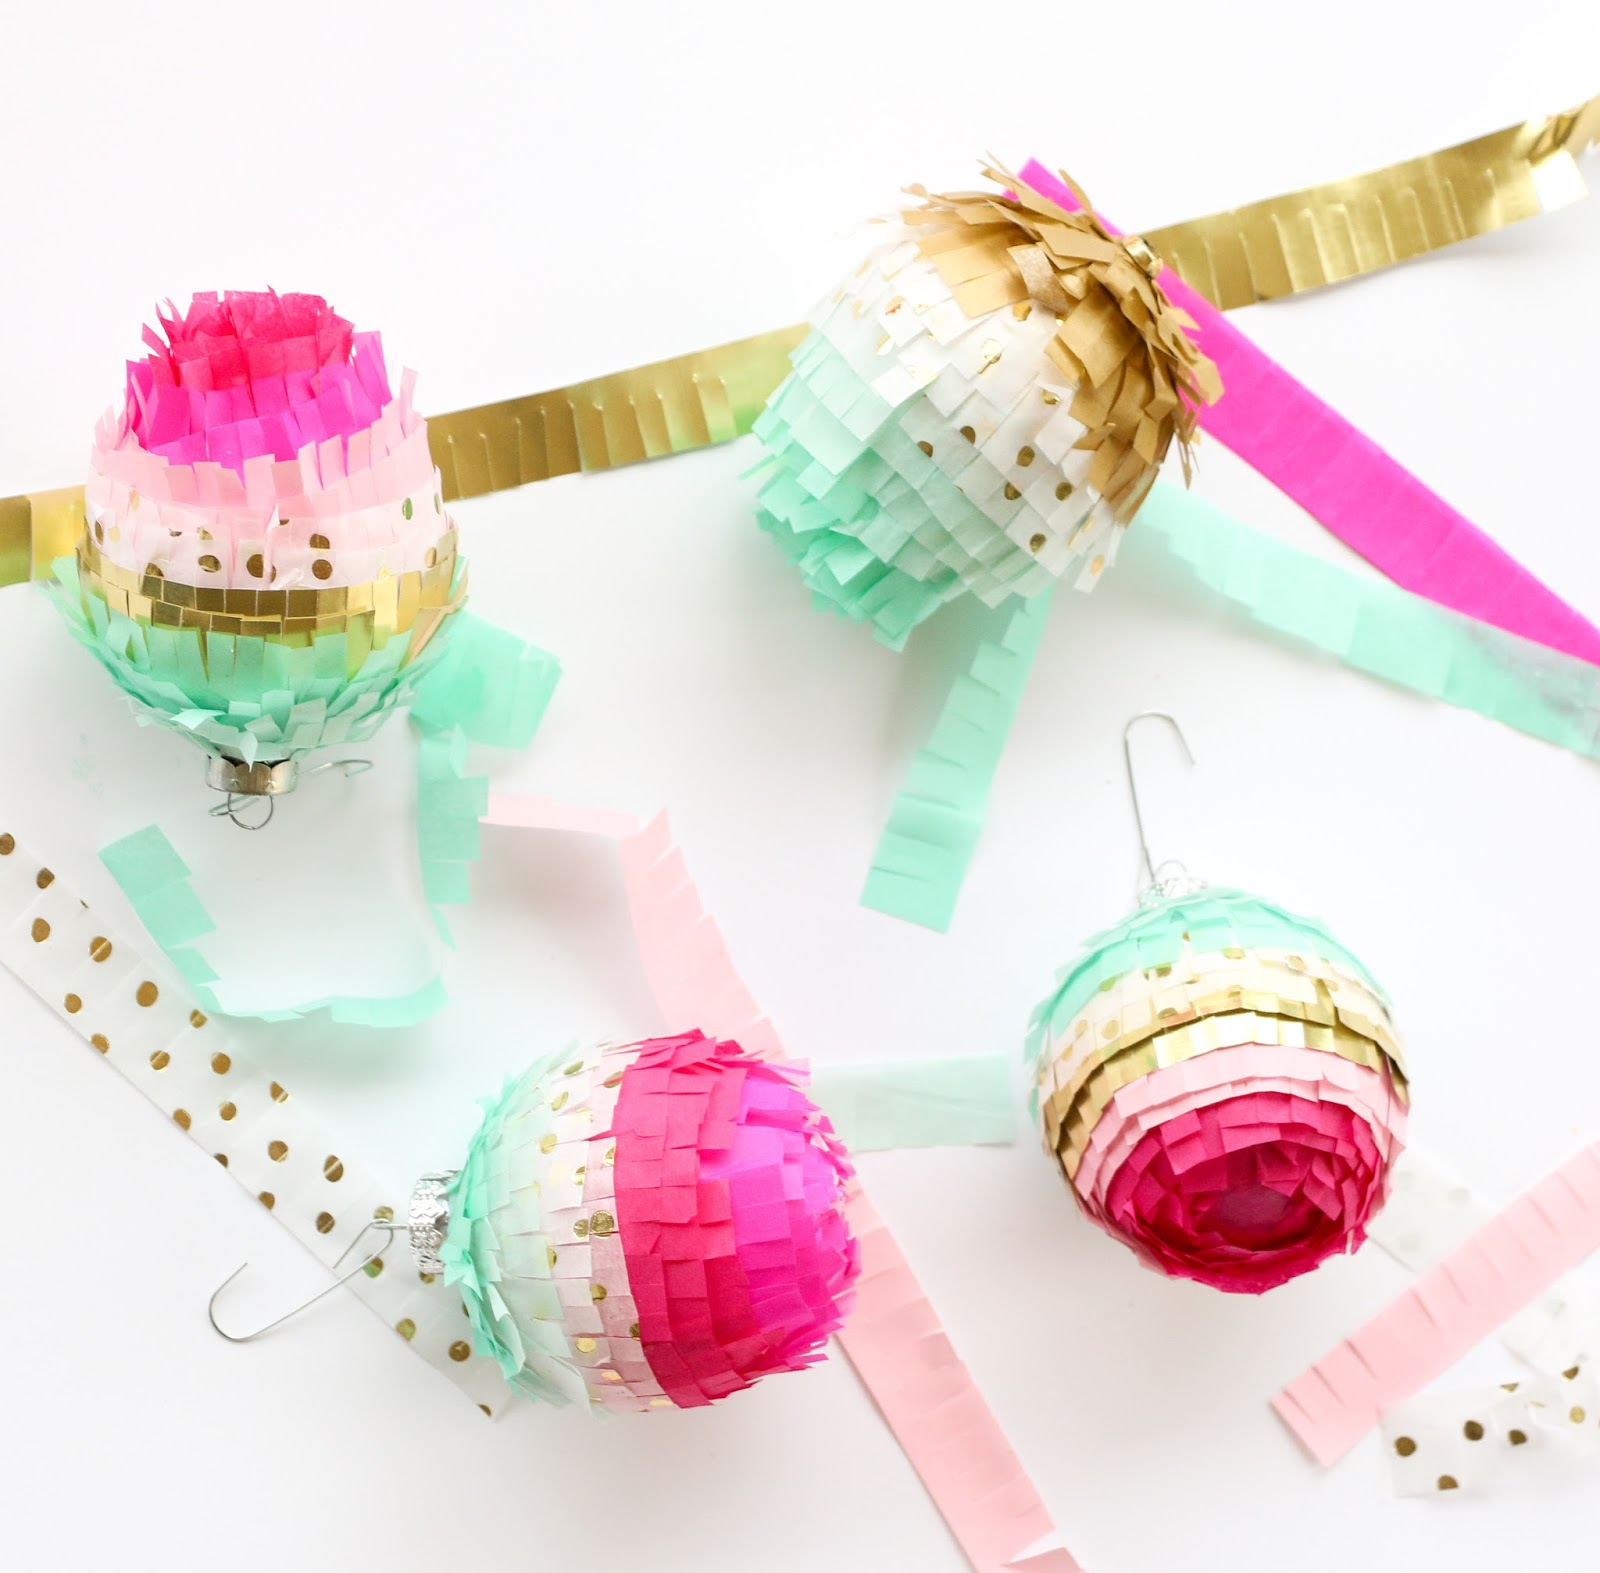 Ice cream ornaments - Stay Tuned All This Week For Several Of My Diy Ornament Ideas Today You Will Learn How To Make Your Own Colorful Fringe Ornaments